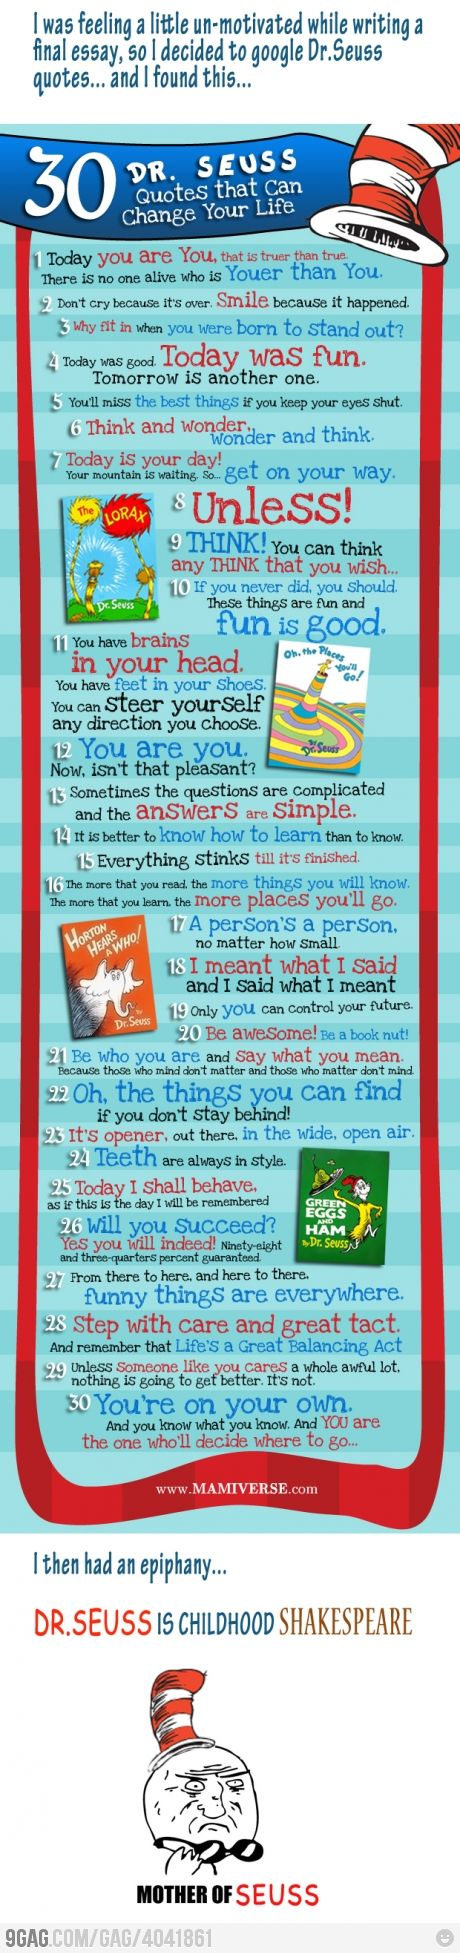 Dr. Seuss quotesIdeas, Inspiration, Drseus, Life Lessons, Kids, Dr Suess, Seuss Quotes, Dr. Seuss, Dr. Suess